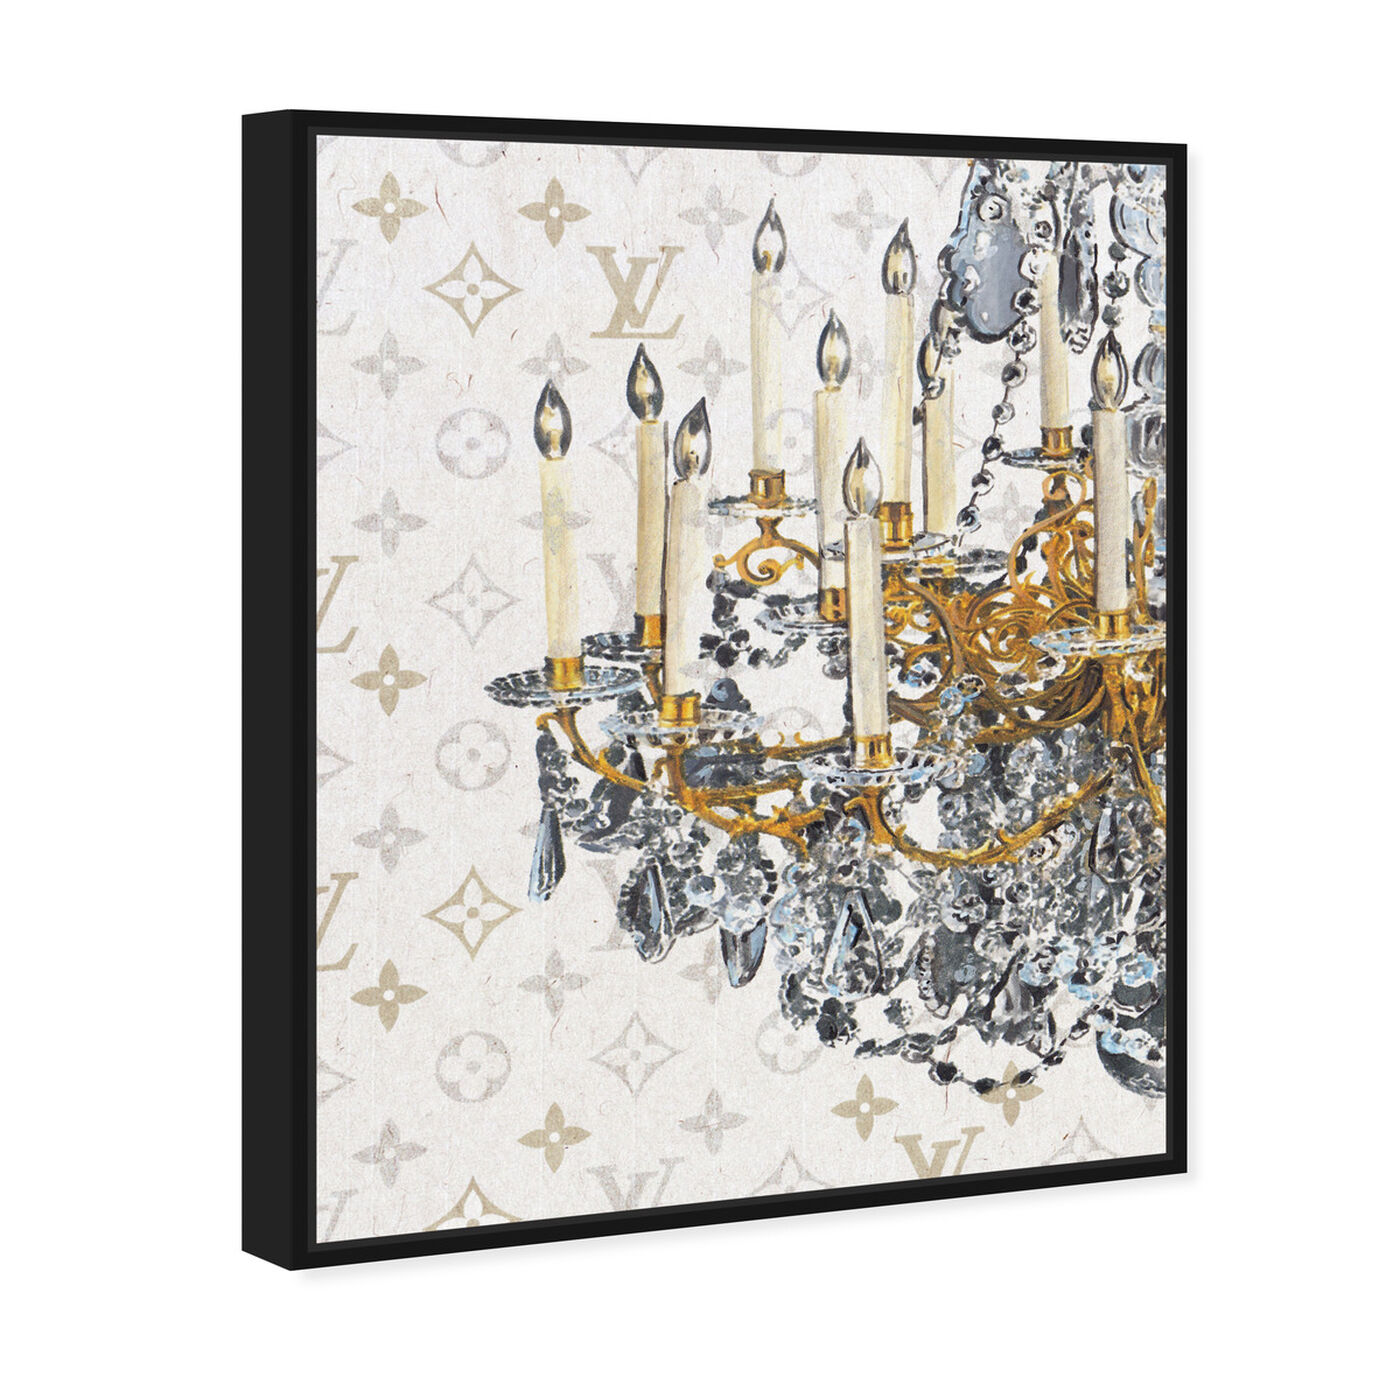 Angled view of Fancy Light I featuring fashion and glam and chandeliers art.